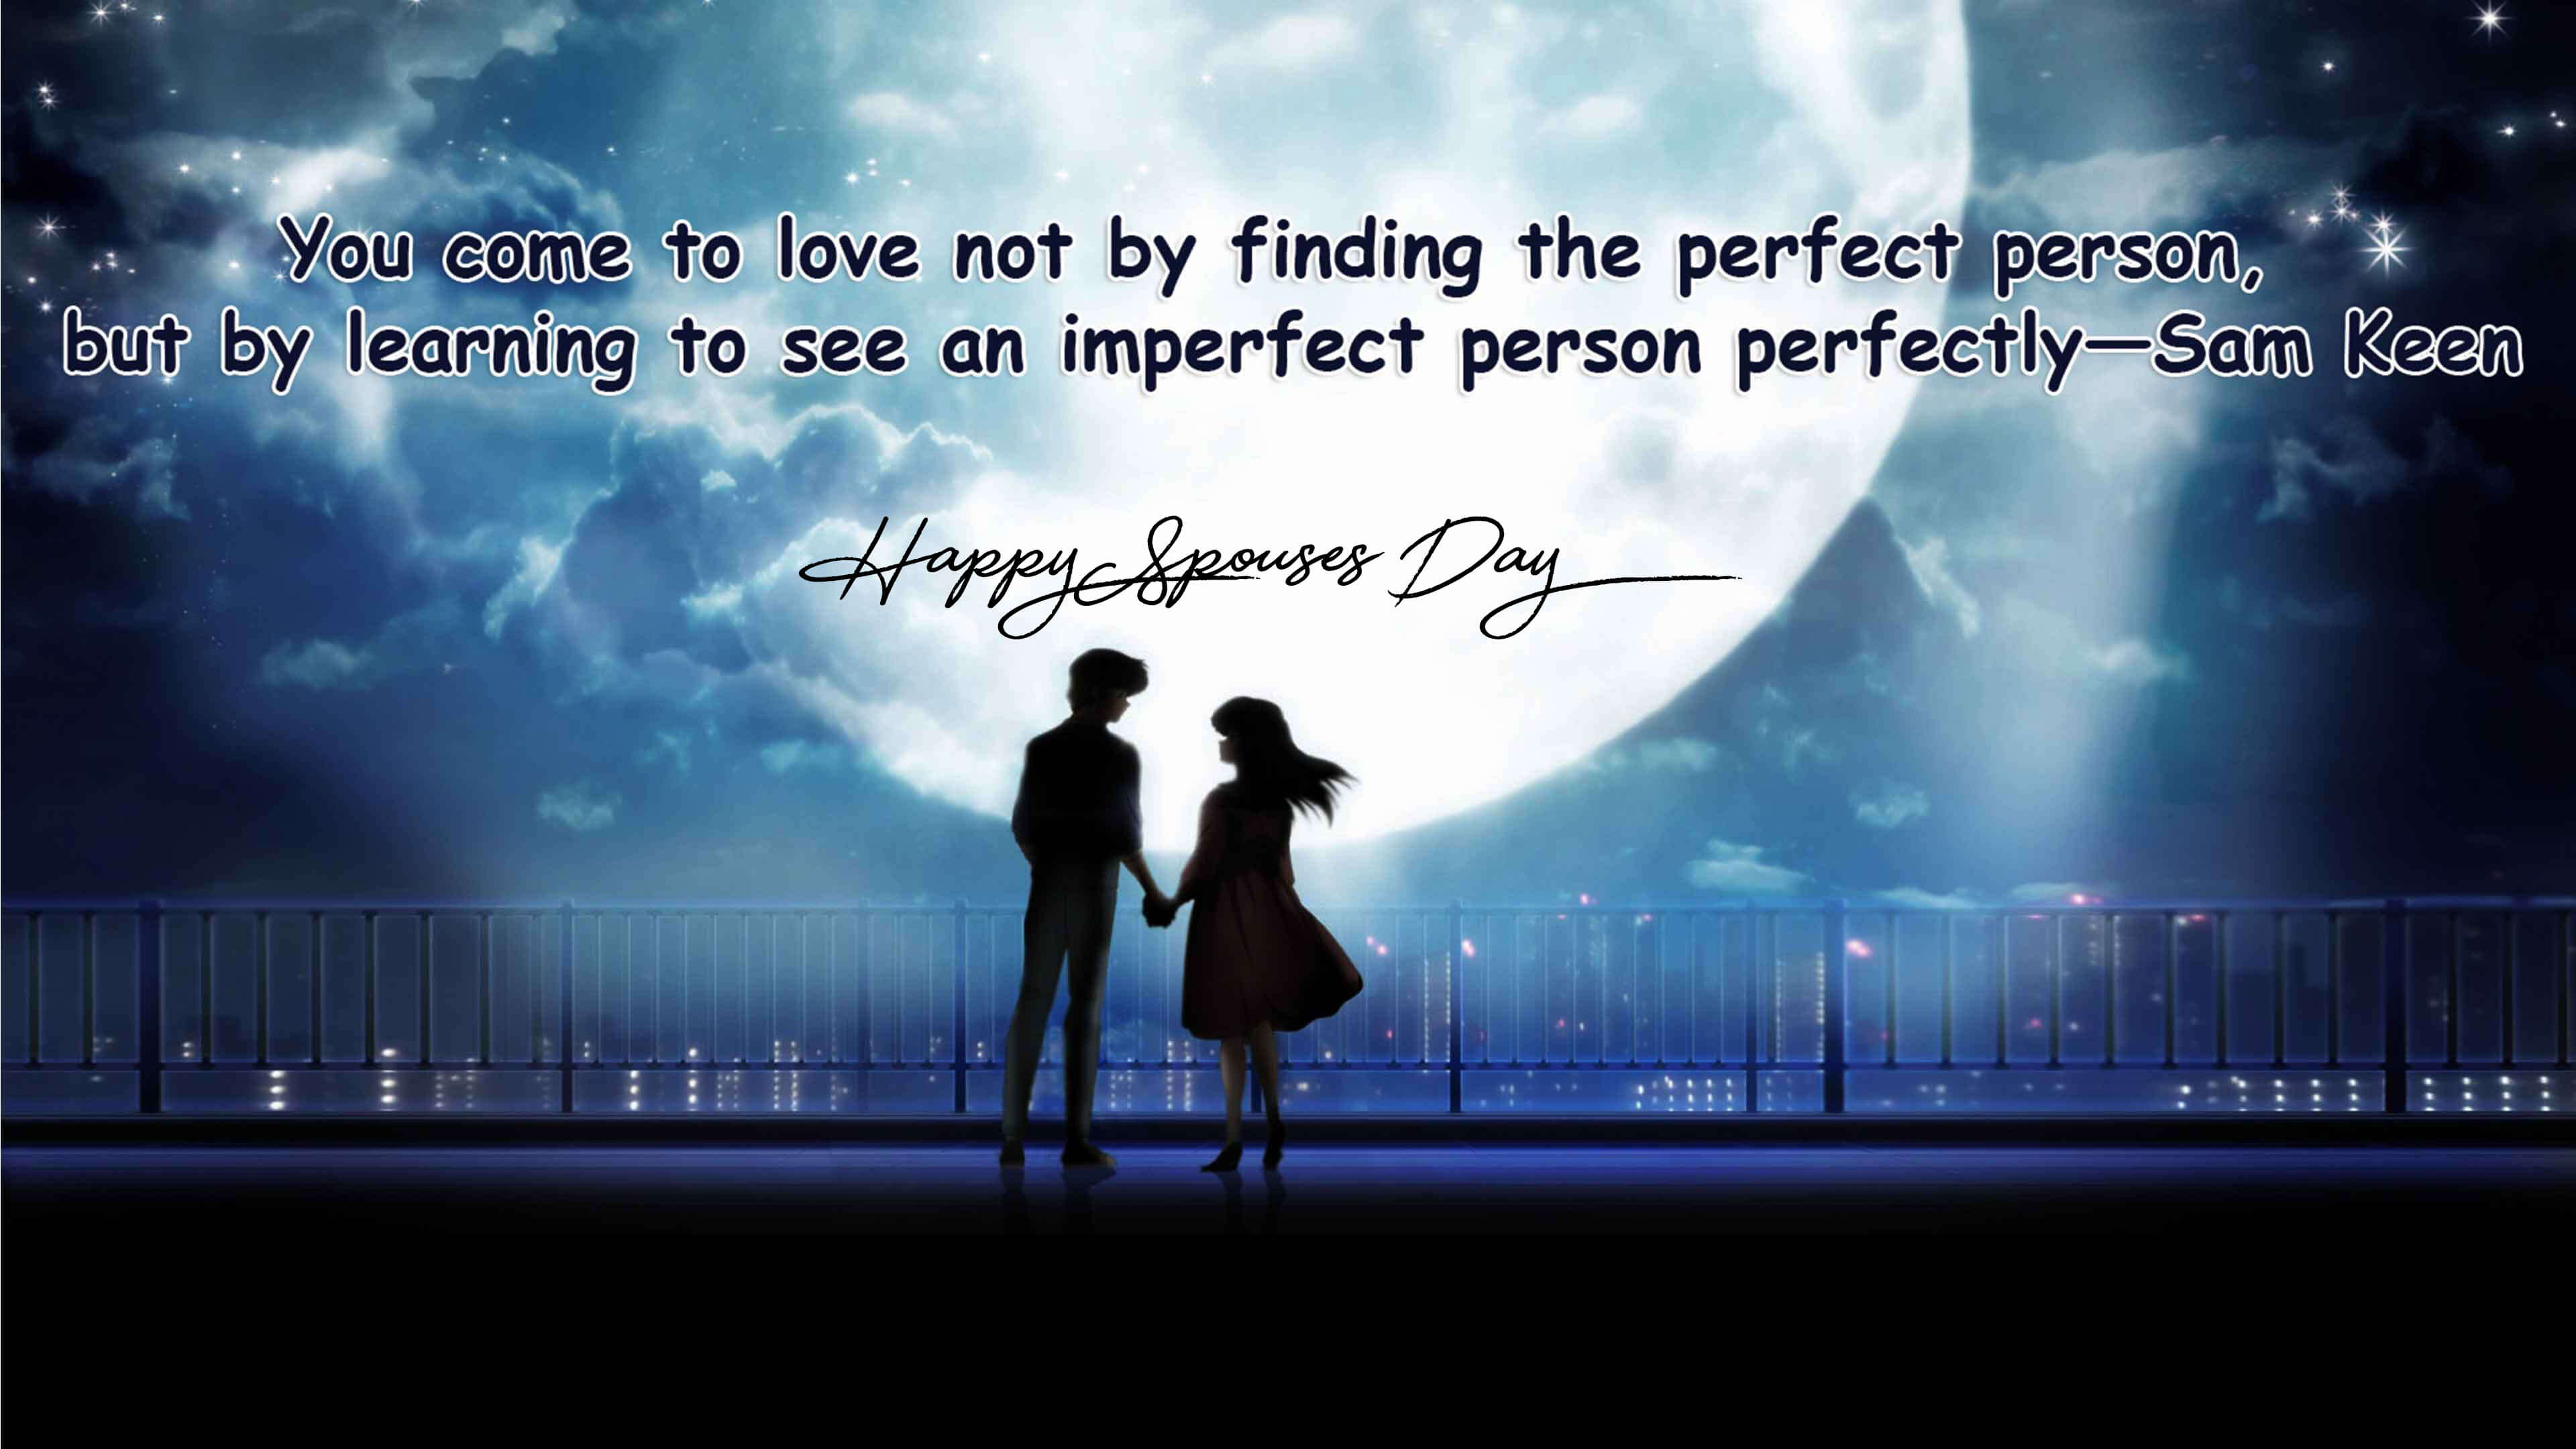 happy spouses day wishes cartoon romantic image quotes hd wallpaper